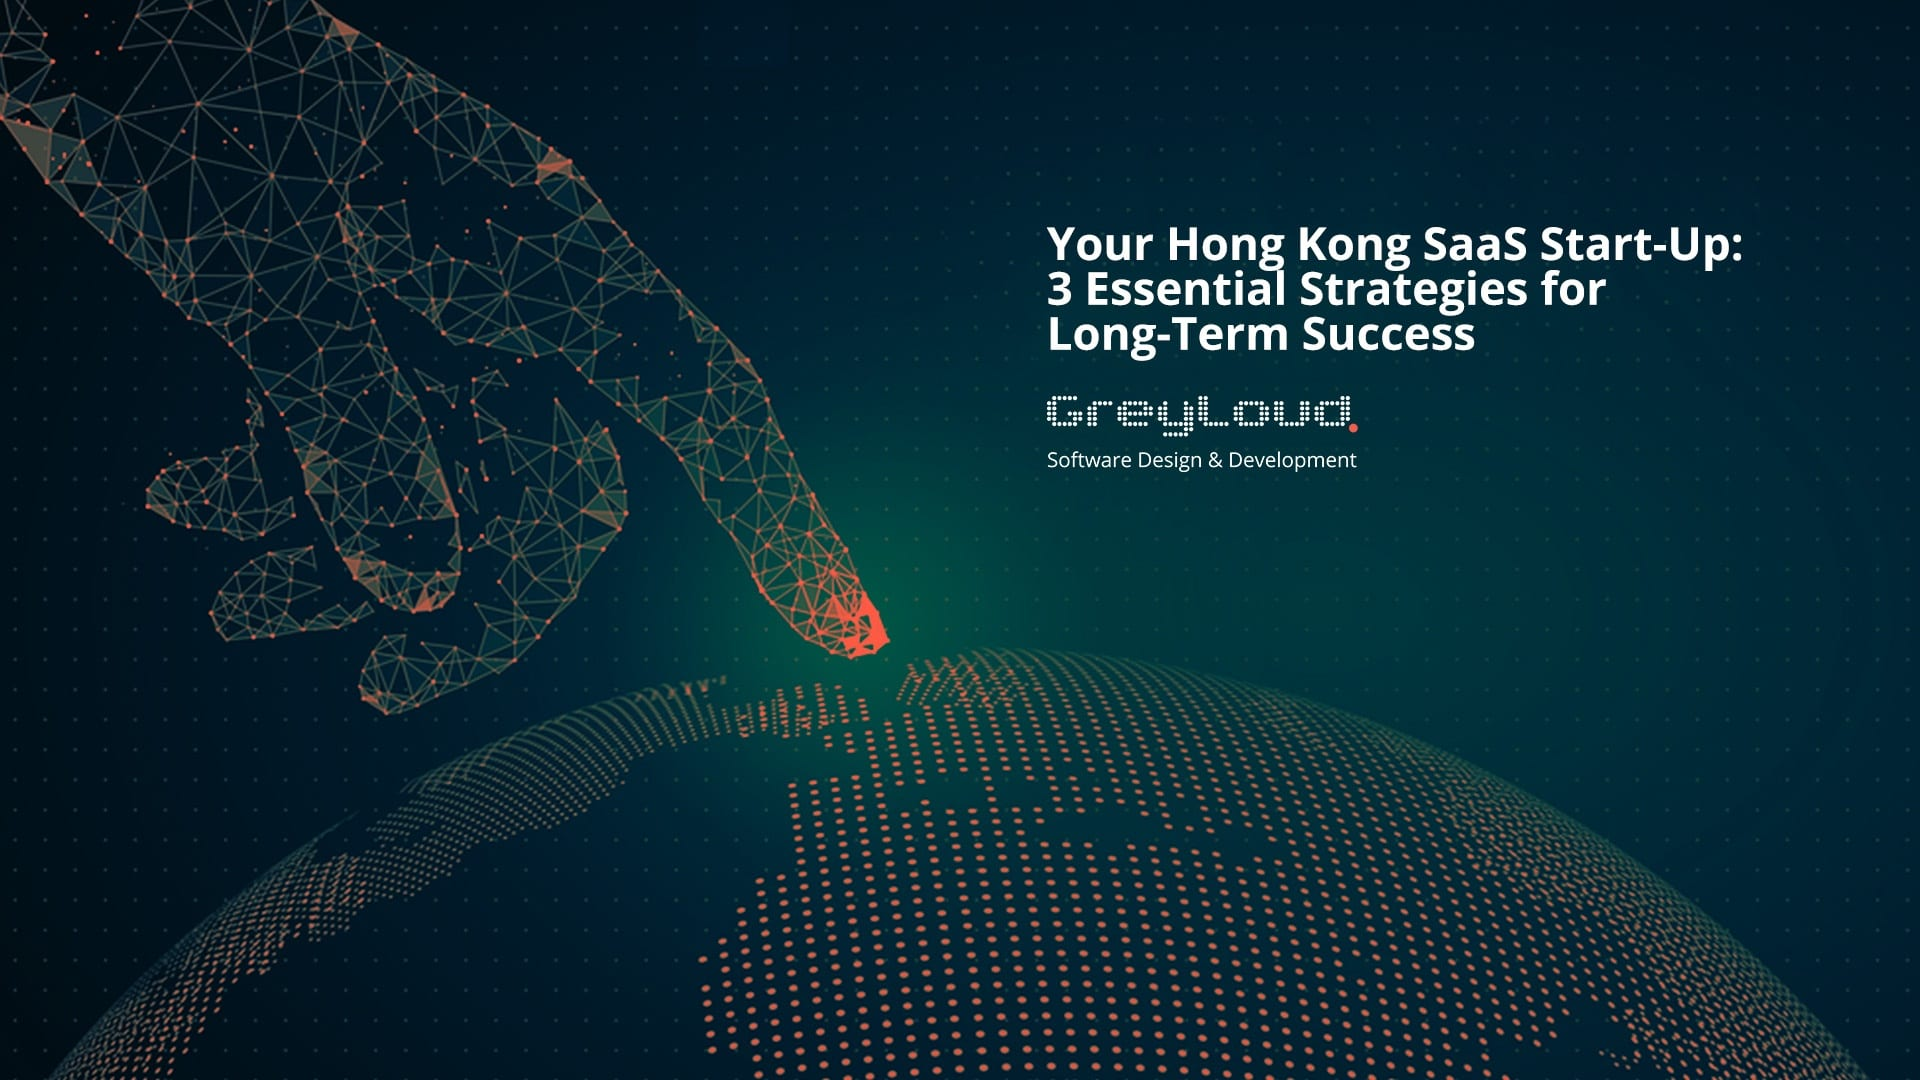 Hong Kong SaaS Startup How to do Development